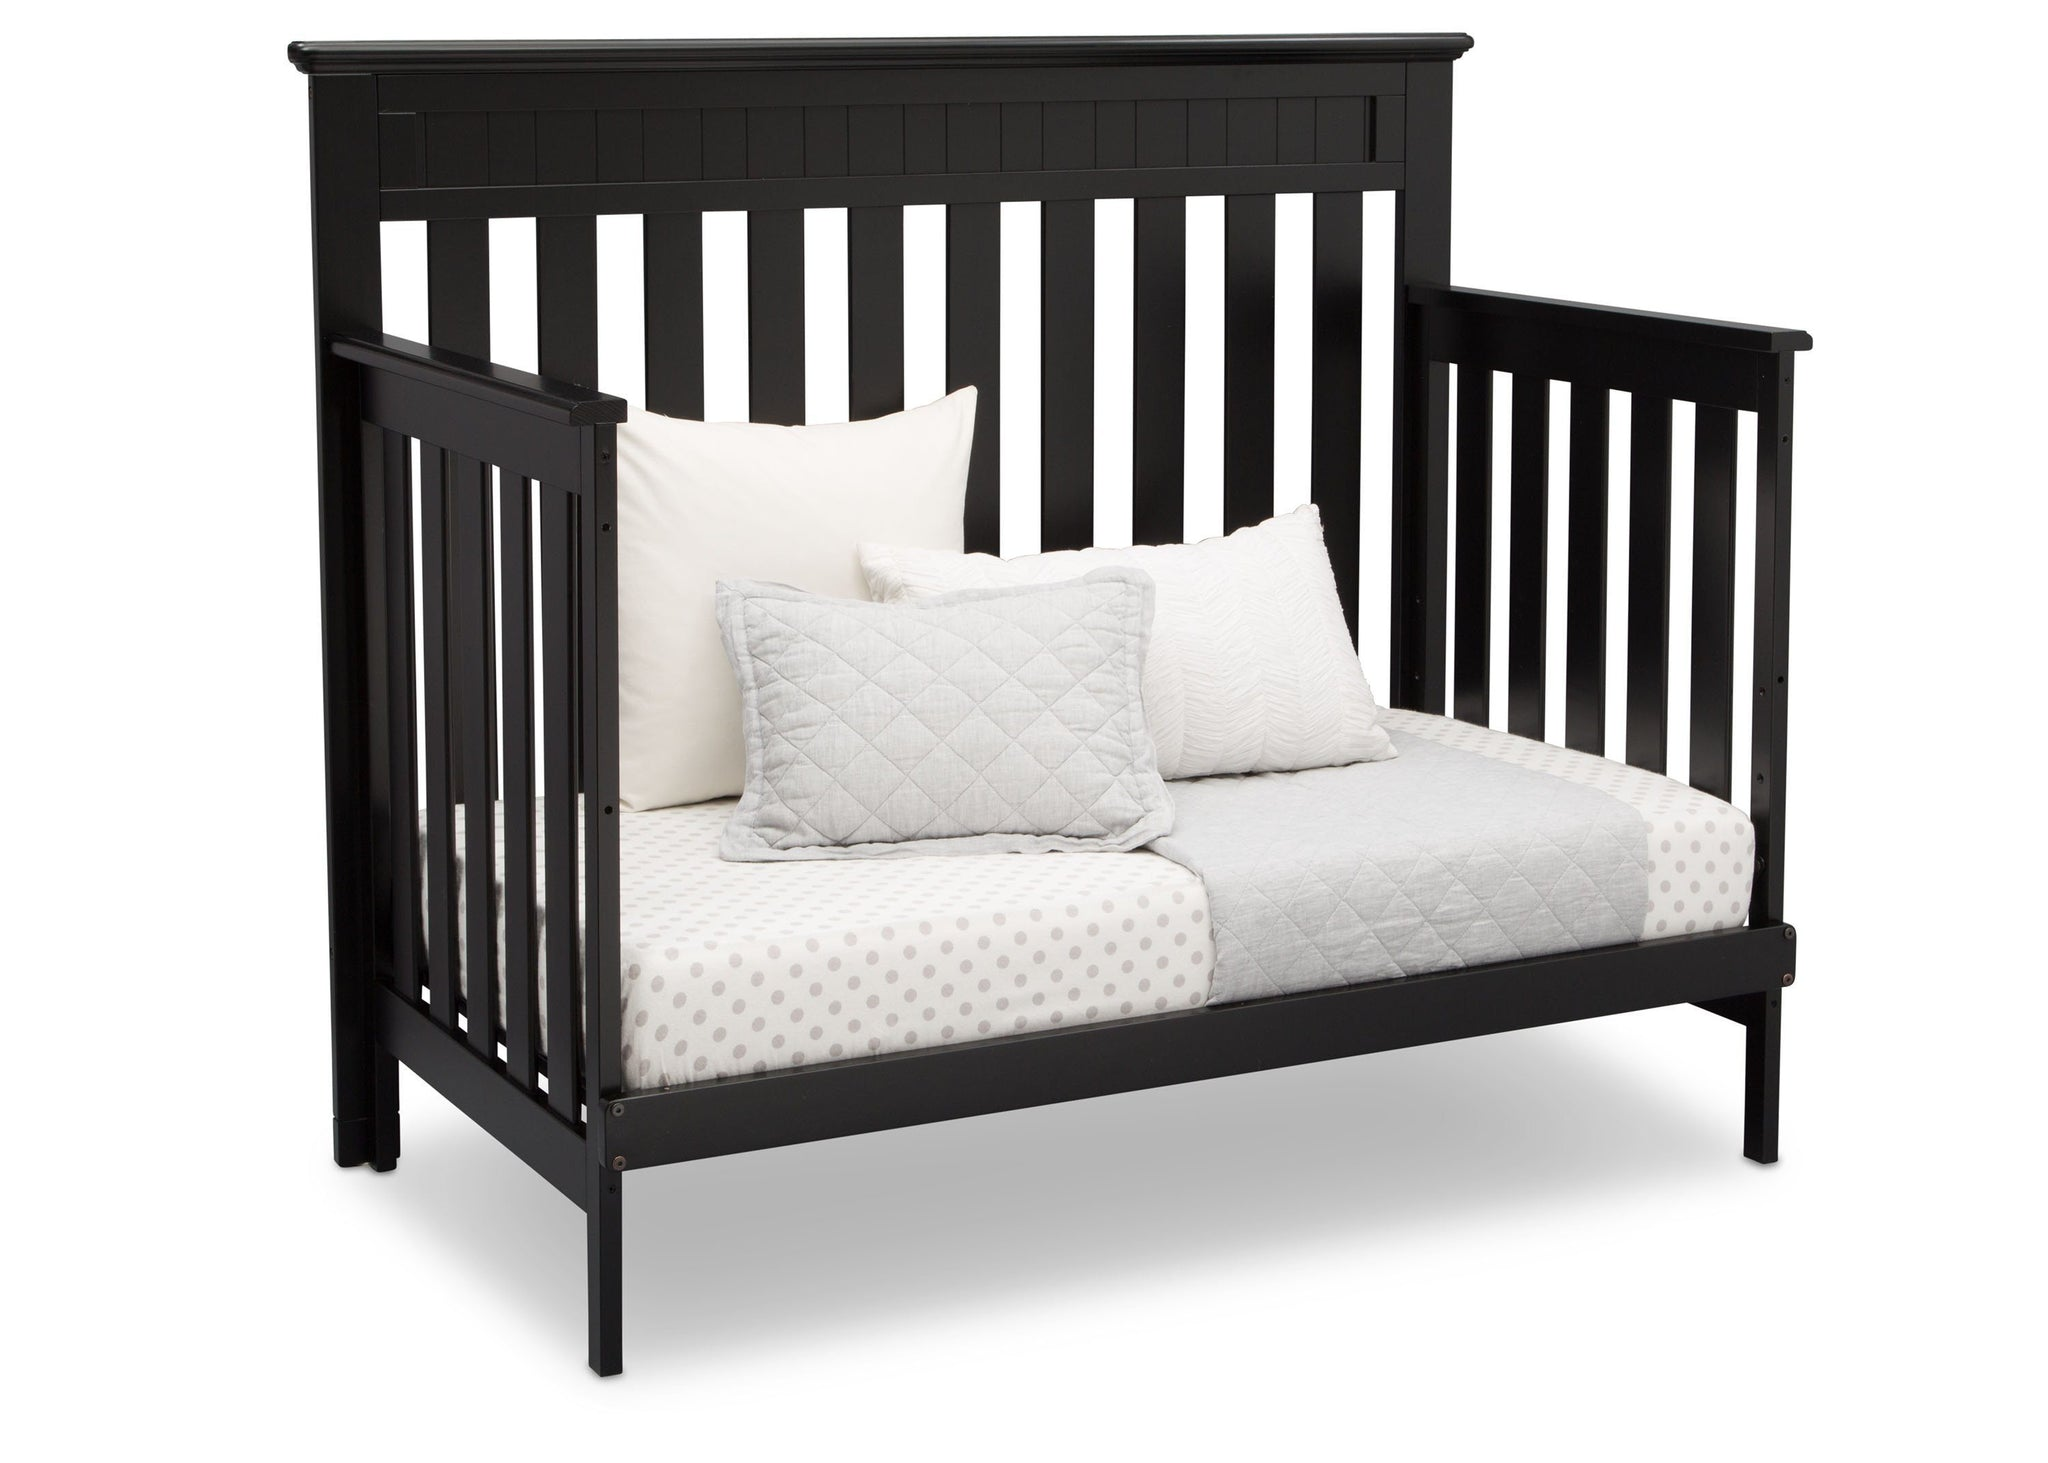 Delta Children Black (001) Chalet 4-in-1 Crib, angled conversion to daybed, c4c